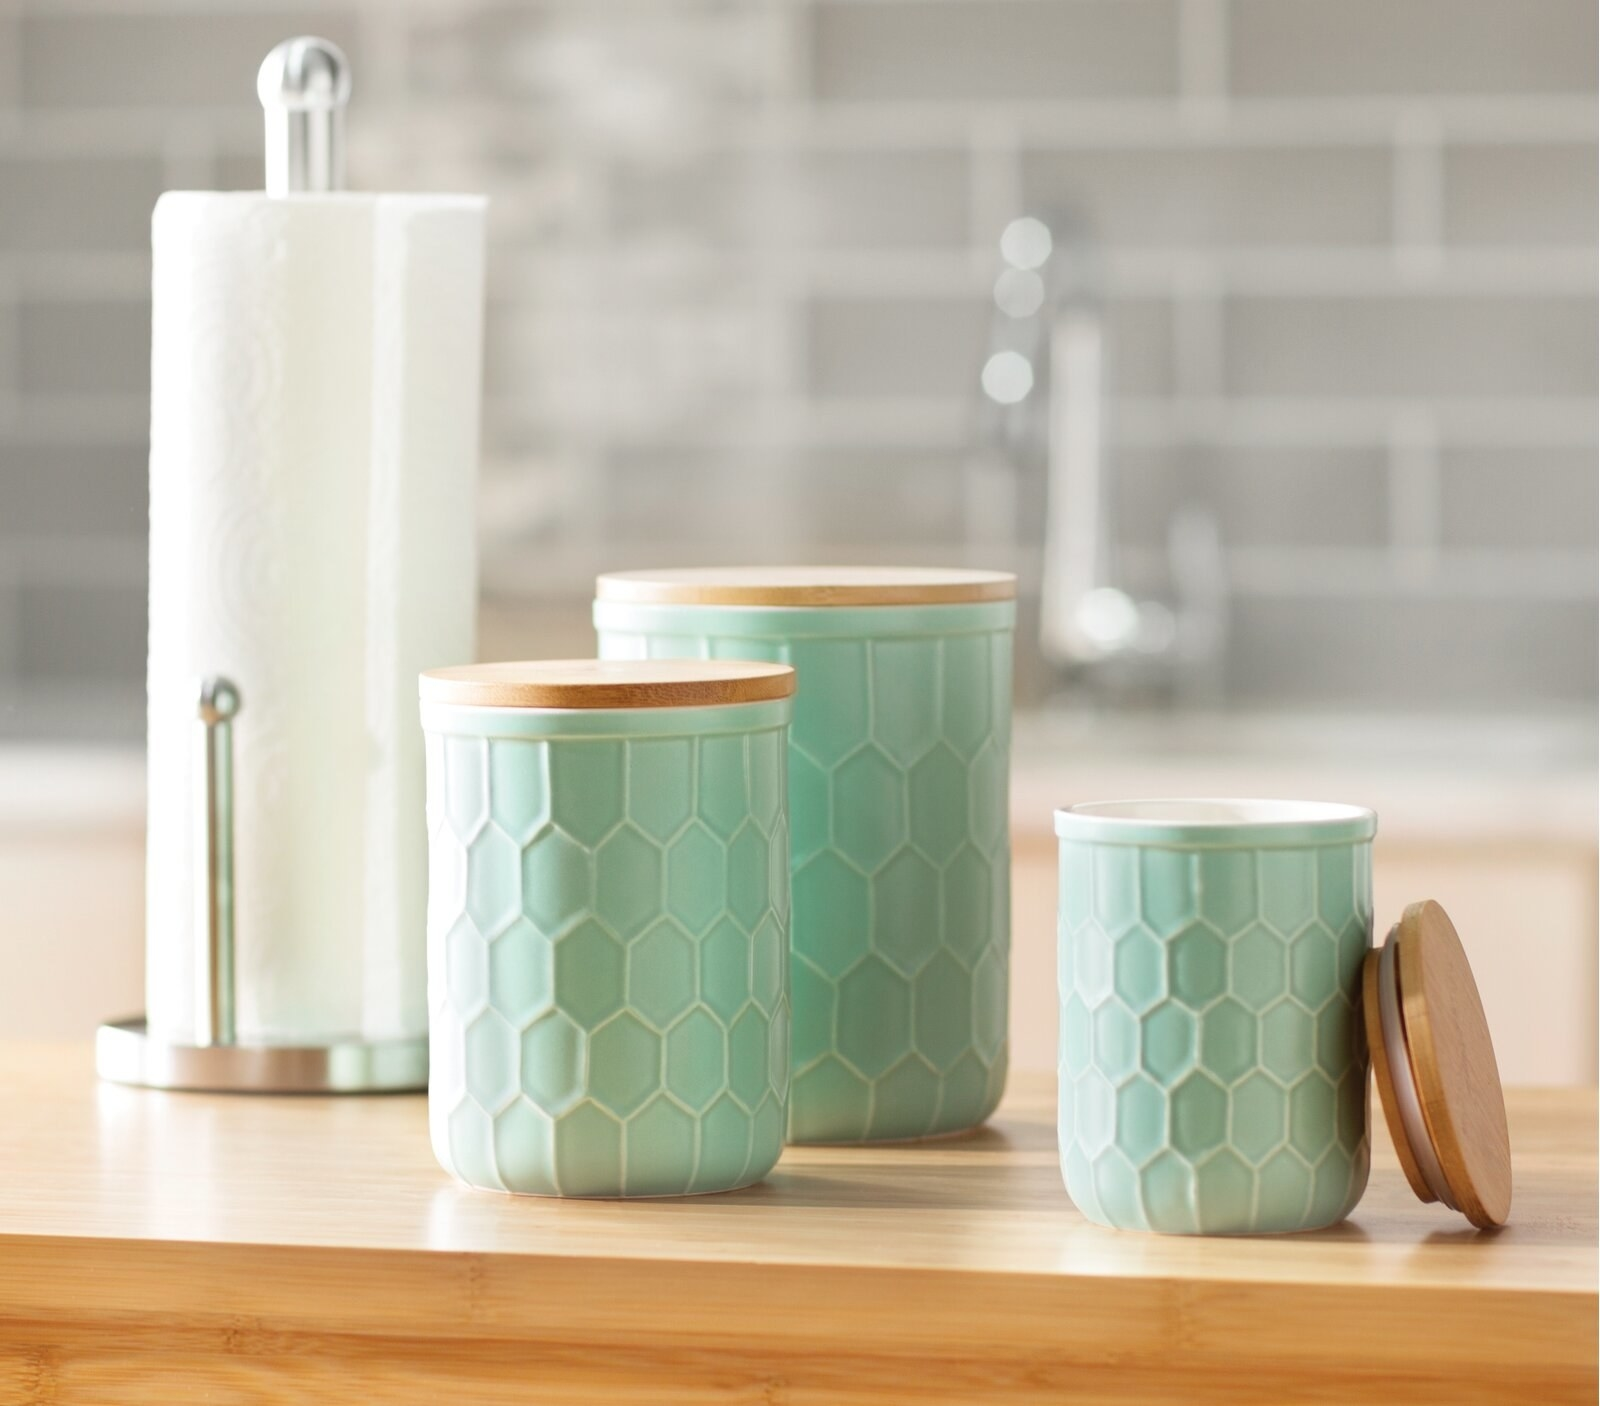 The canisters, which have flat wooden tops and a hexagonal textured pattern on their surfaces, in mint green